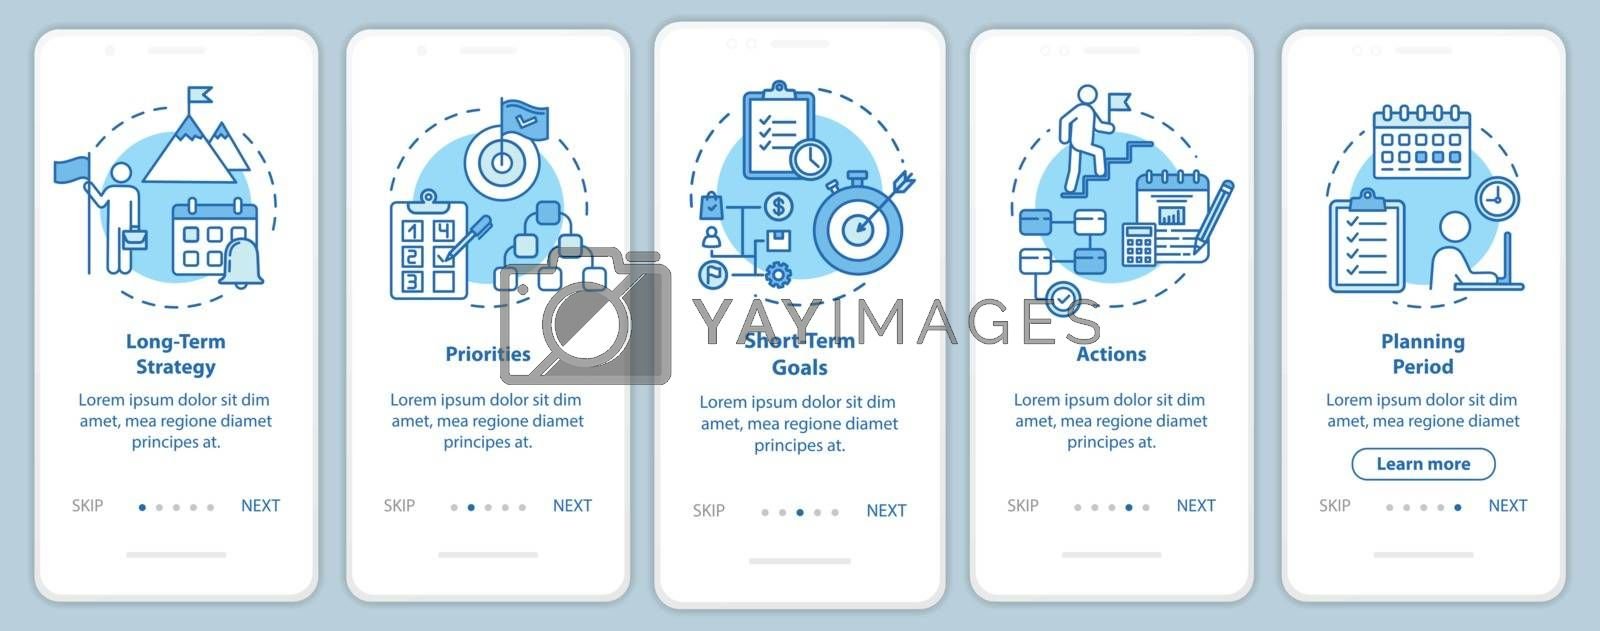 Time strategies onboarding mobile app page screen with concepts. Planning and scheming.Targeting walkthrough 5 steps graphic instructions. UI vector template with RGB color illustrations